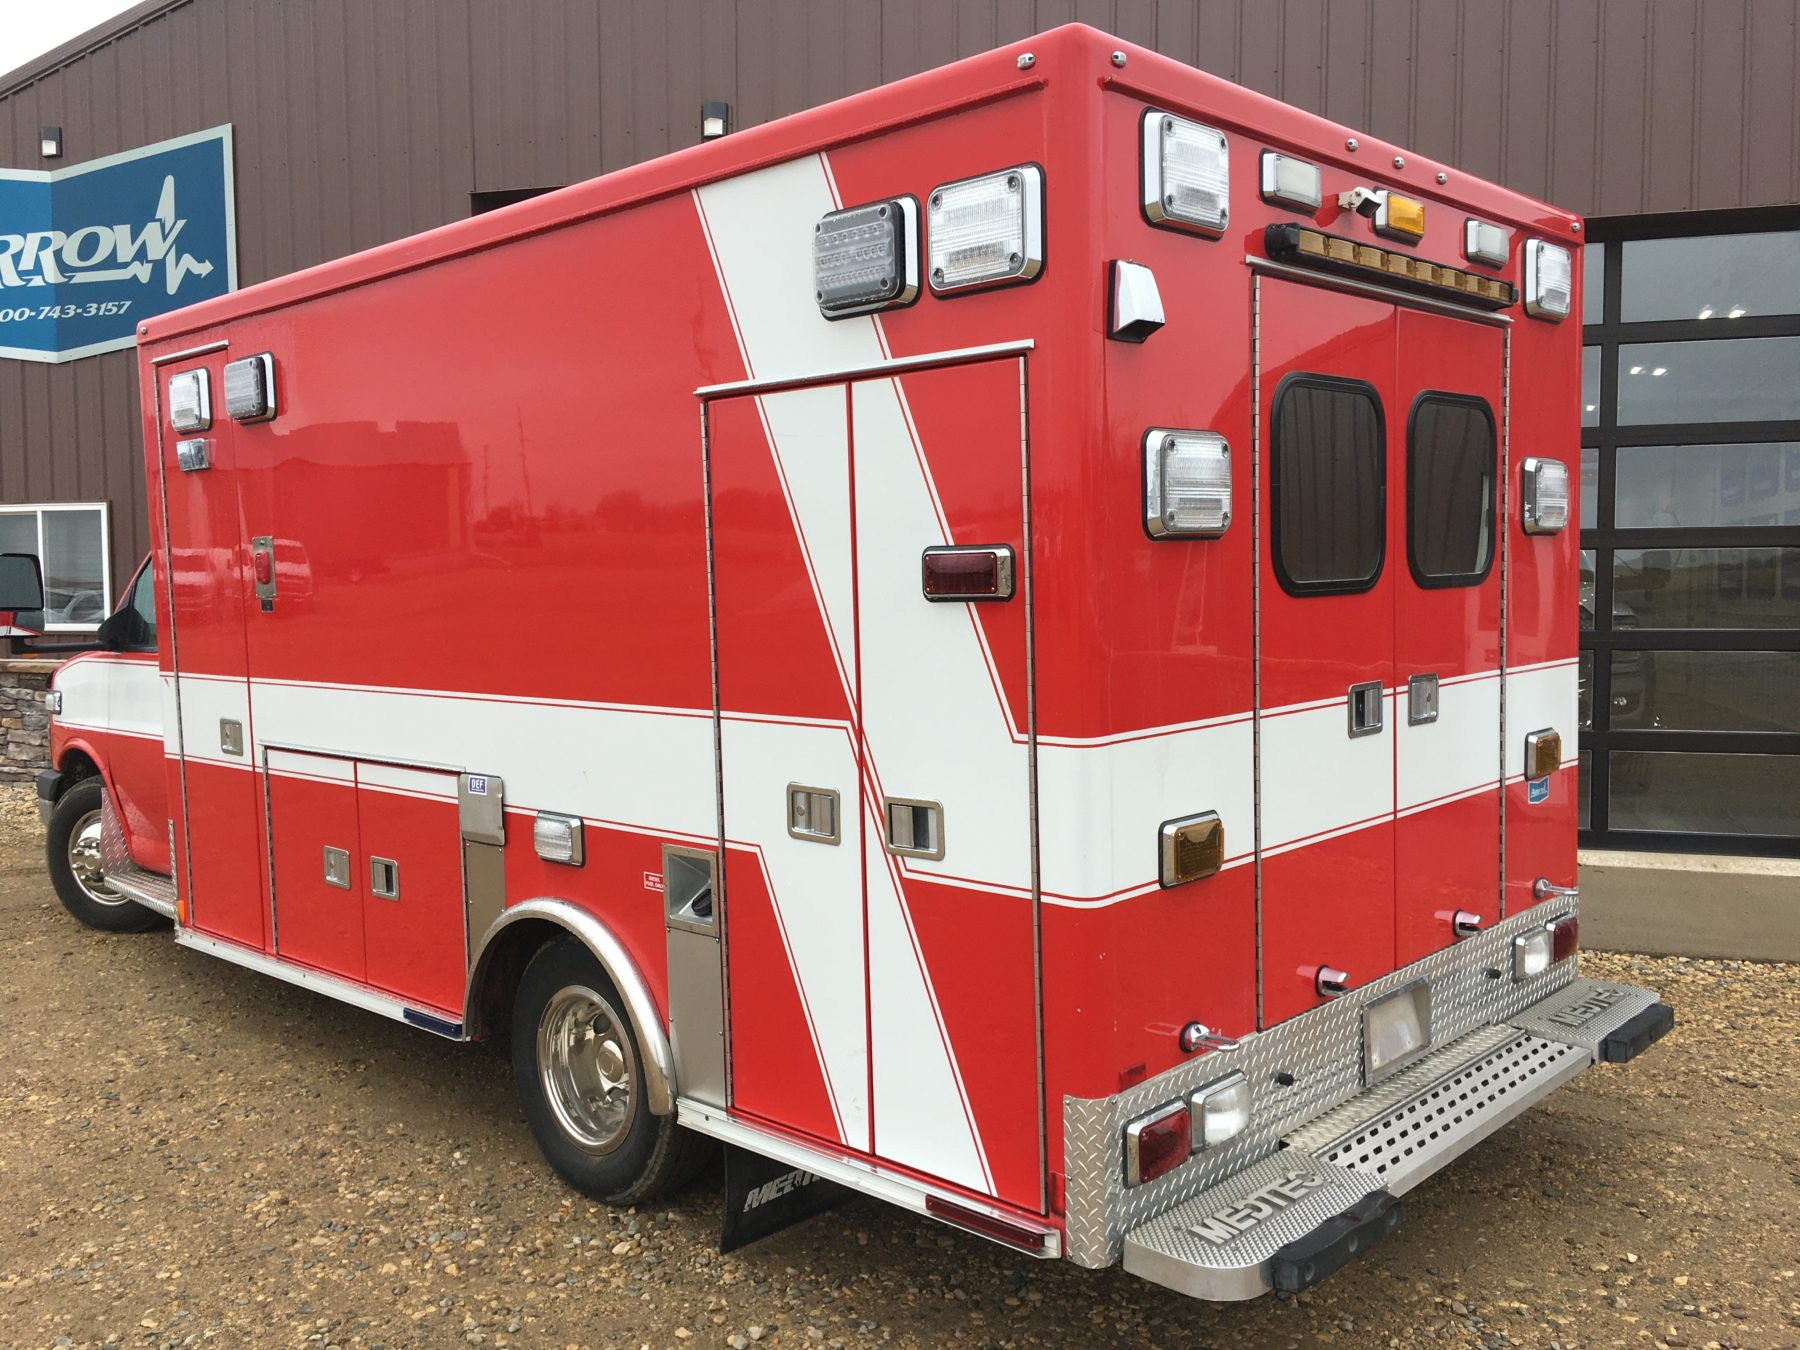 2011 Chevrolet G4500 Type 3 Ambulance For Sale – Picture 7